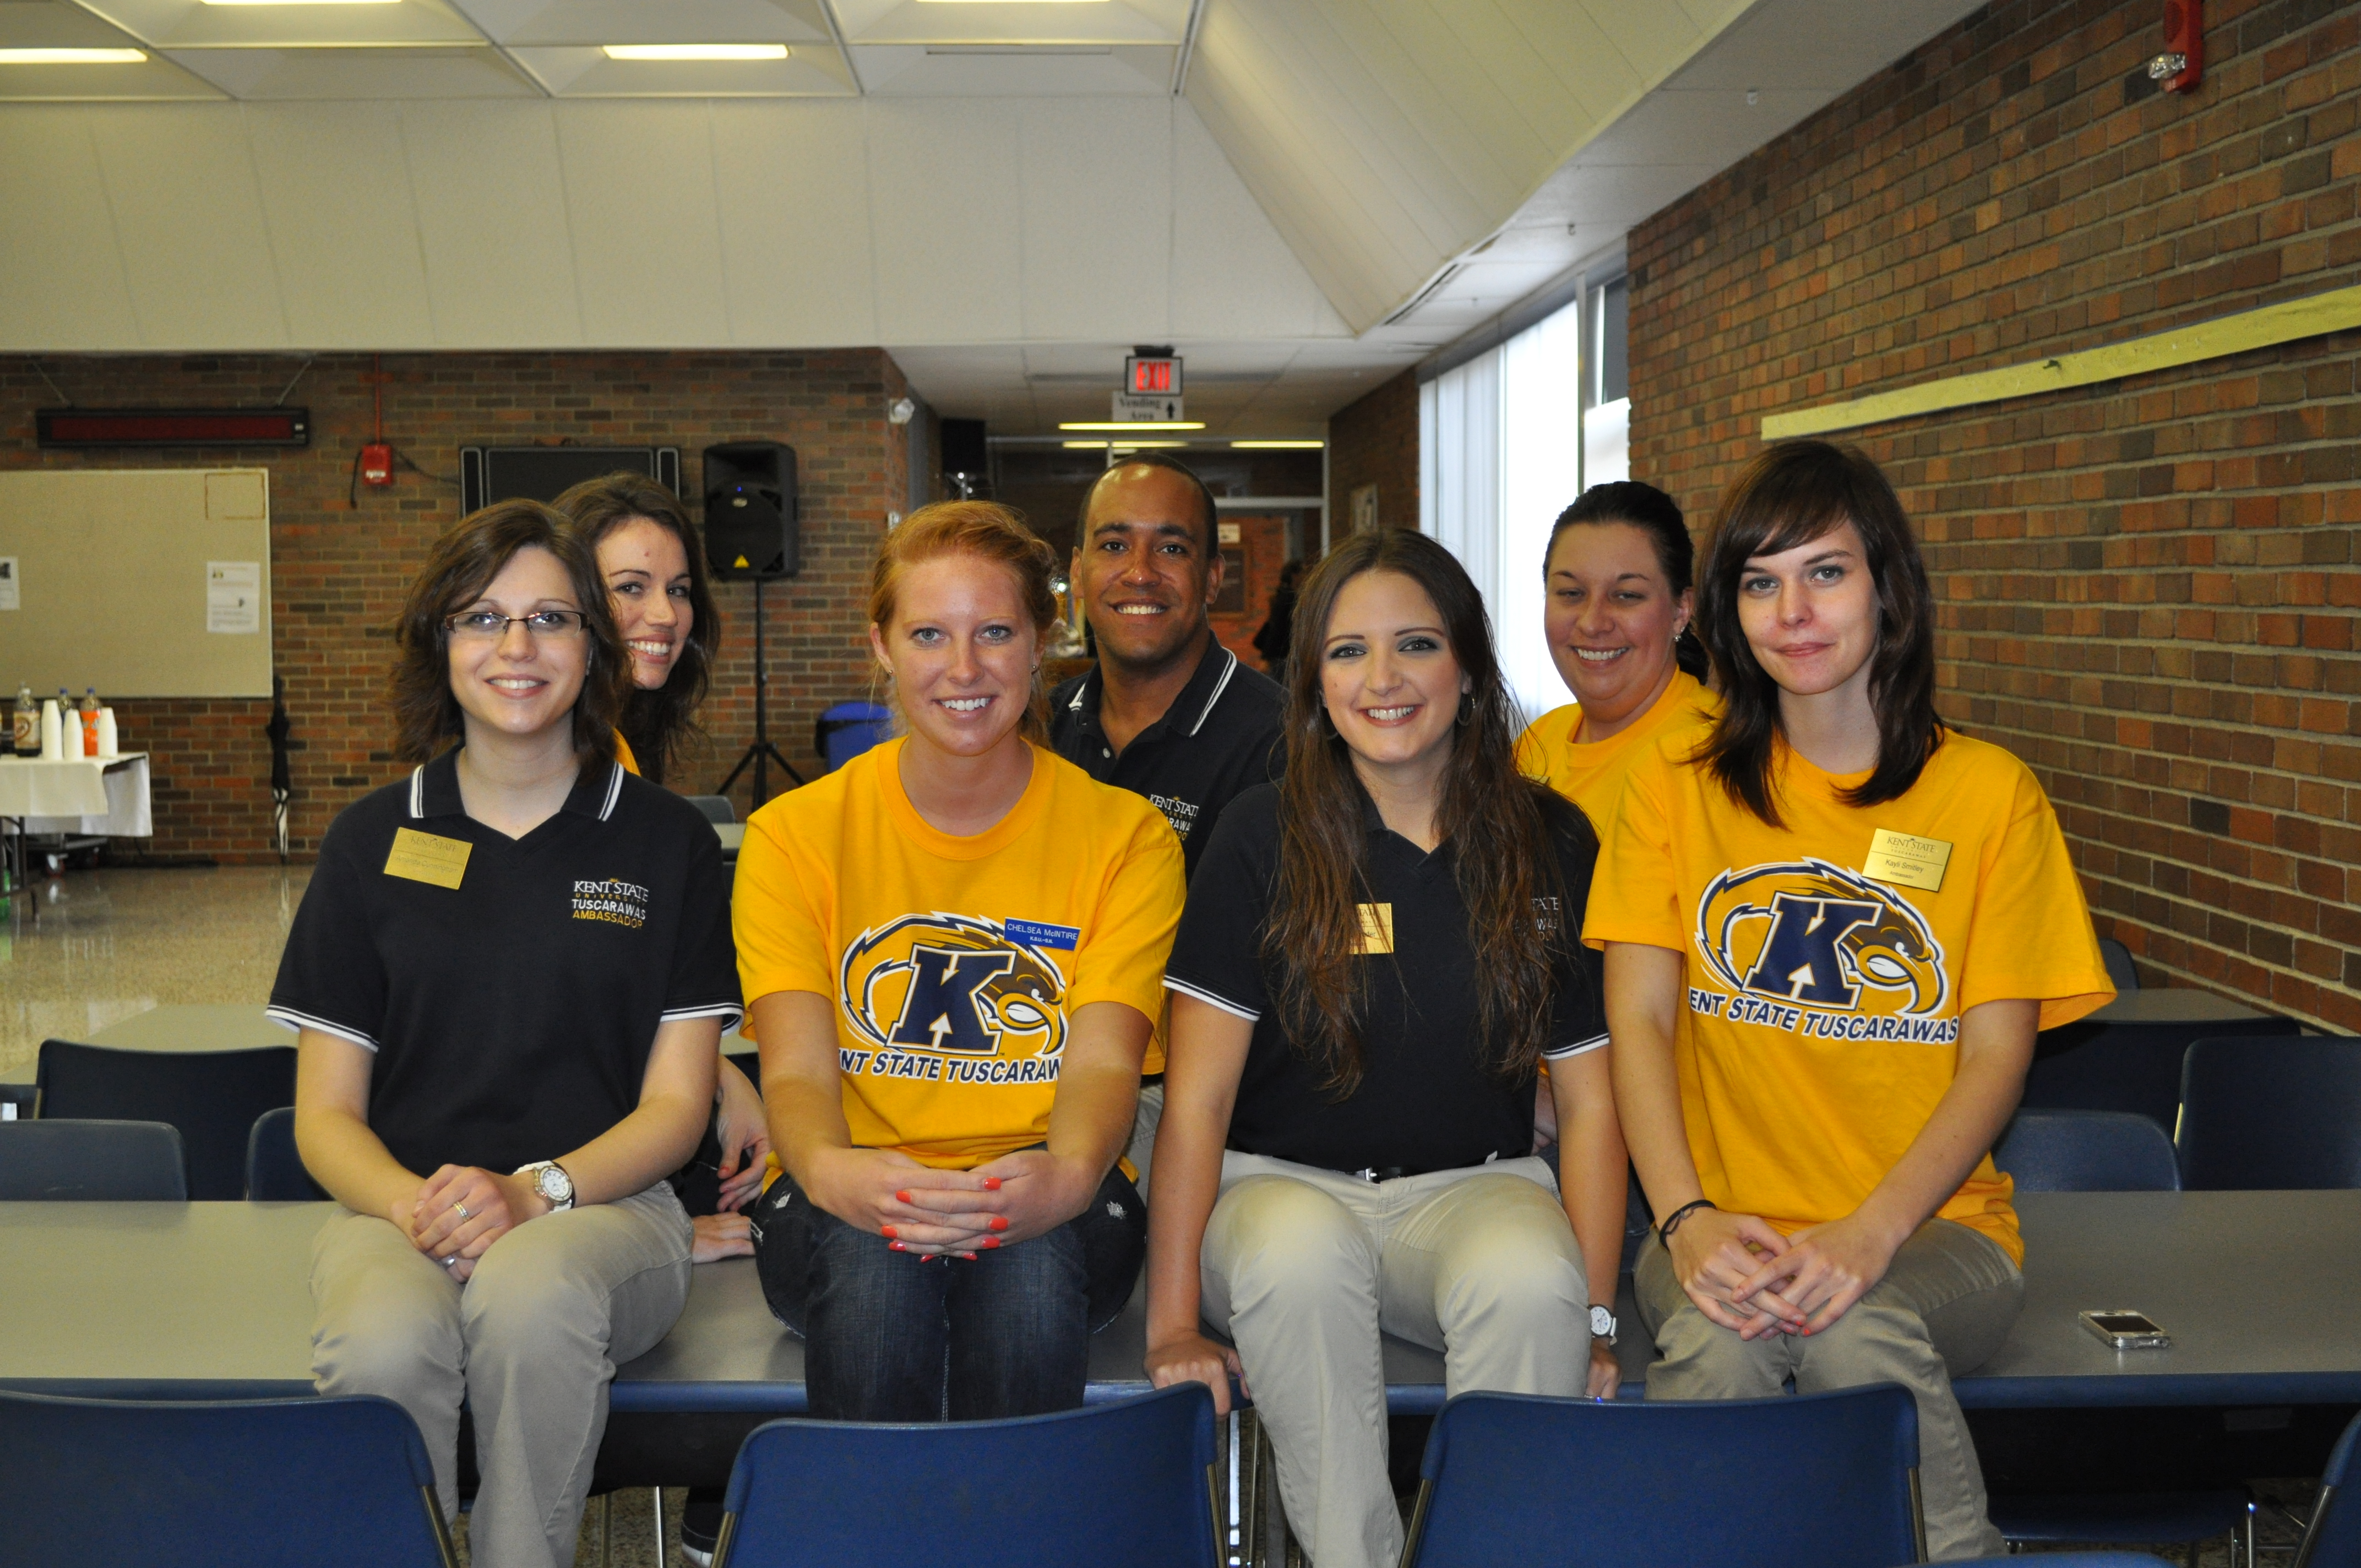 Kent State Tuscarawas adult students